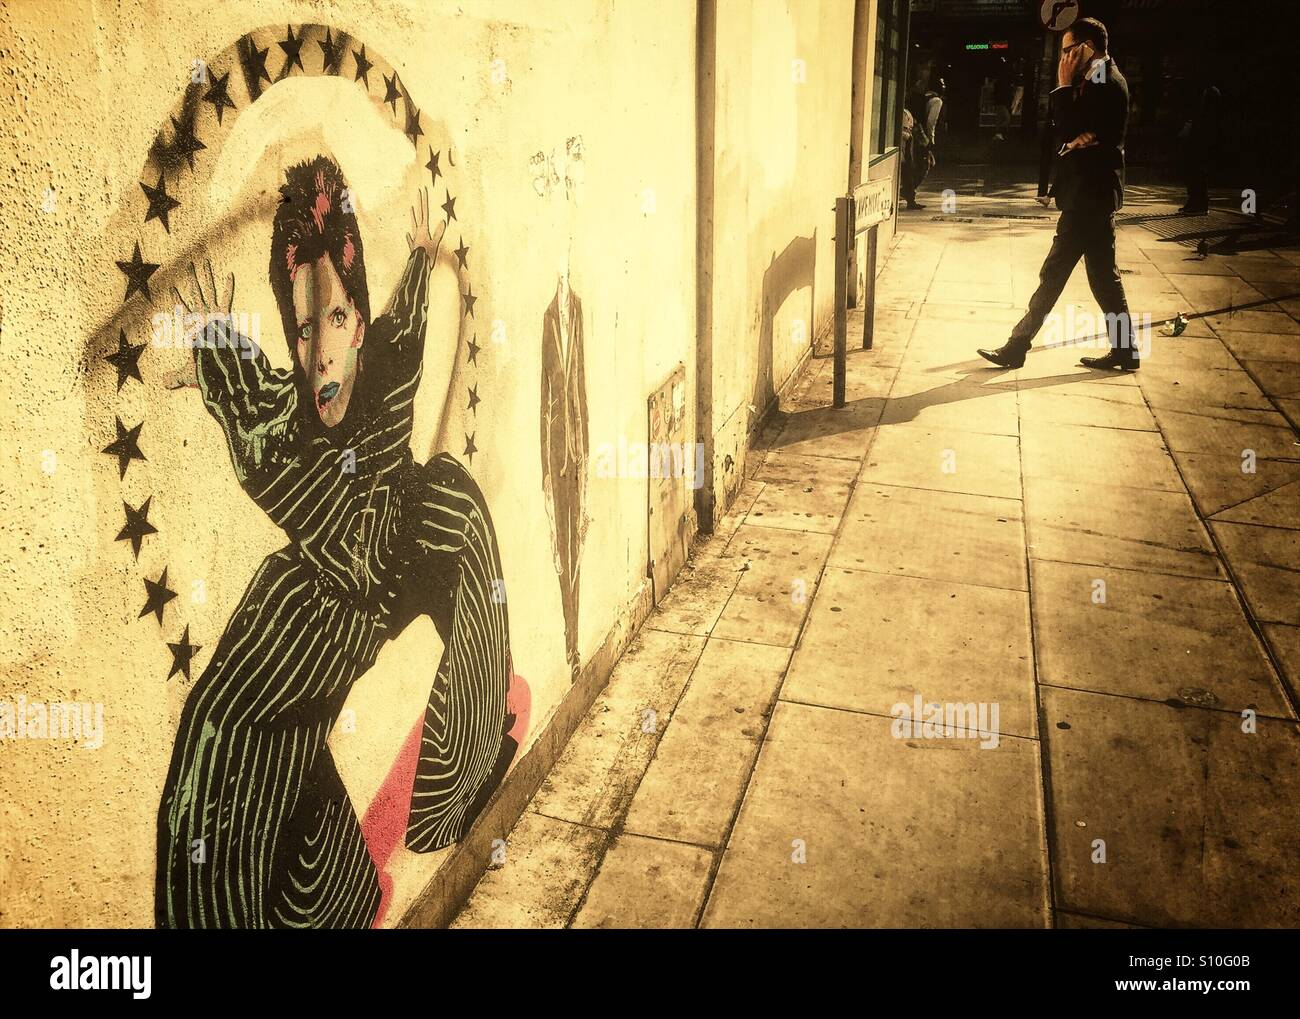 David Bowie Mural Stock Photos & David Bowie Mural Stock Images - Alamy